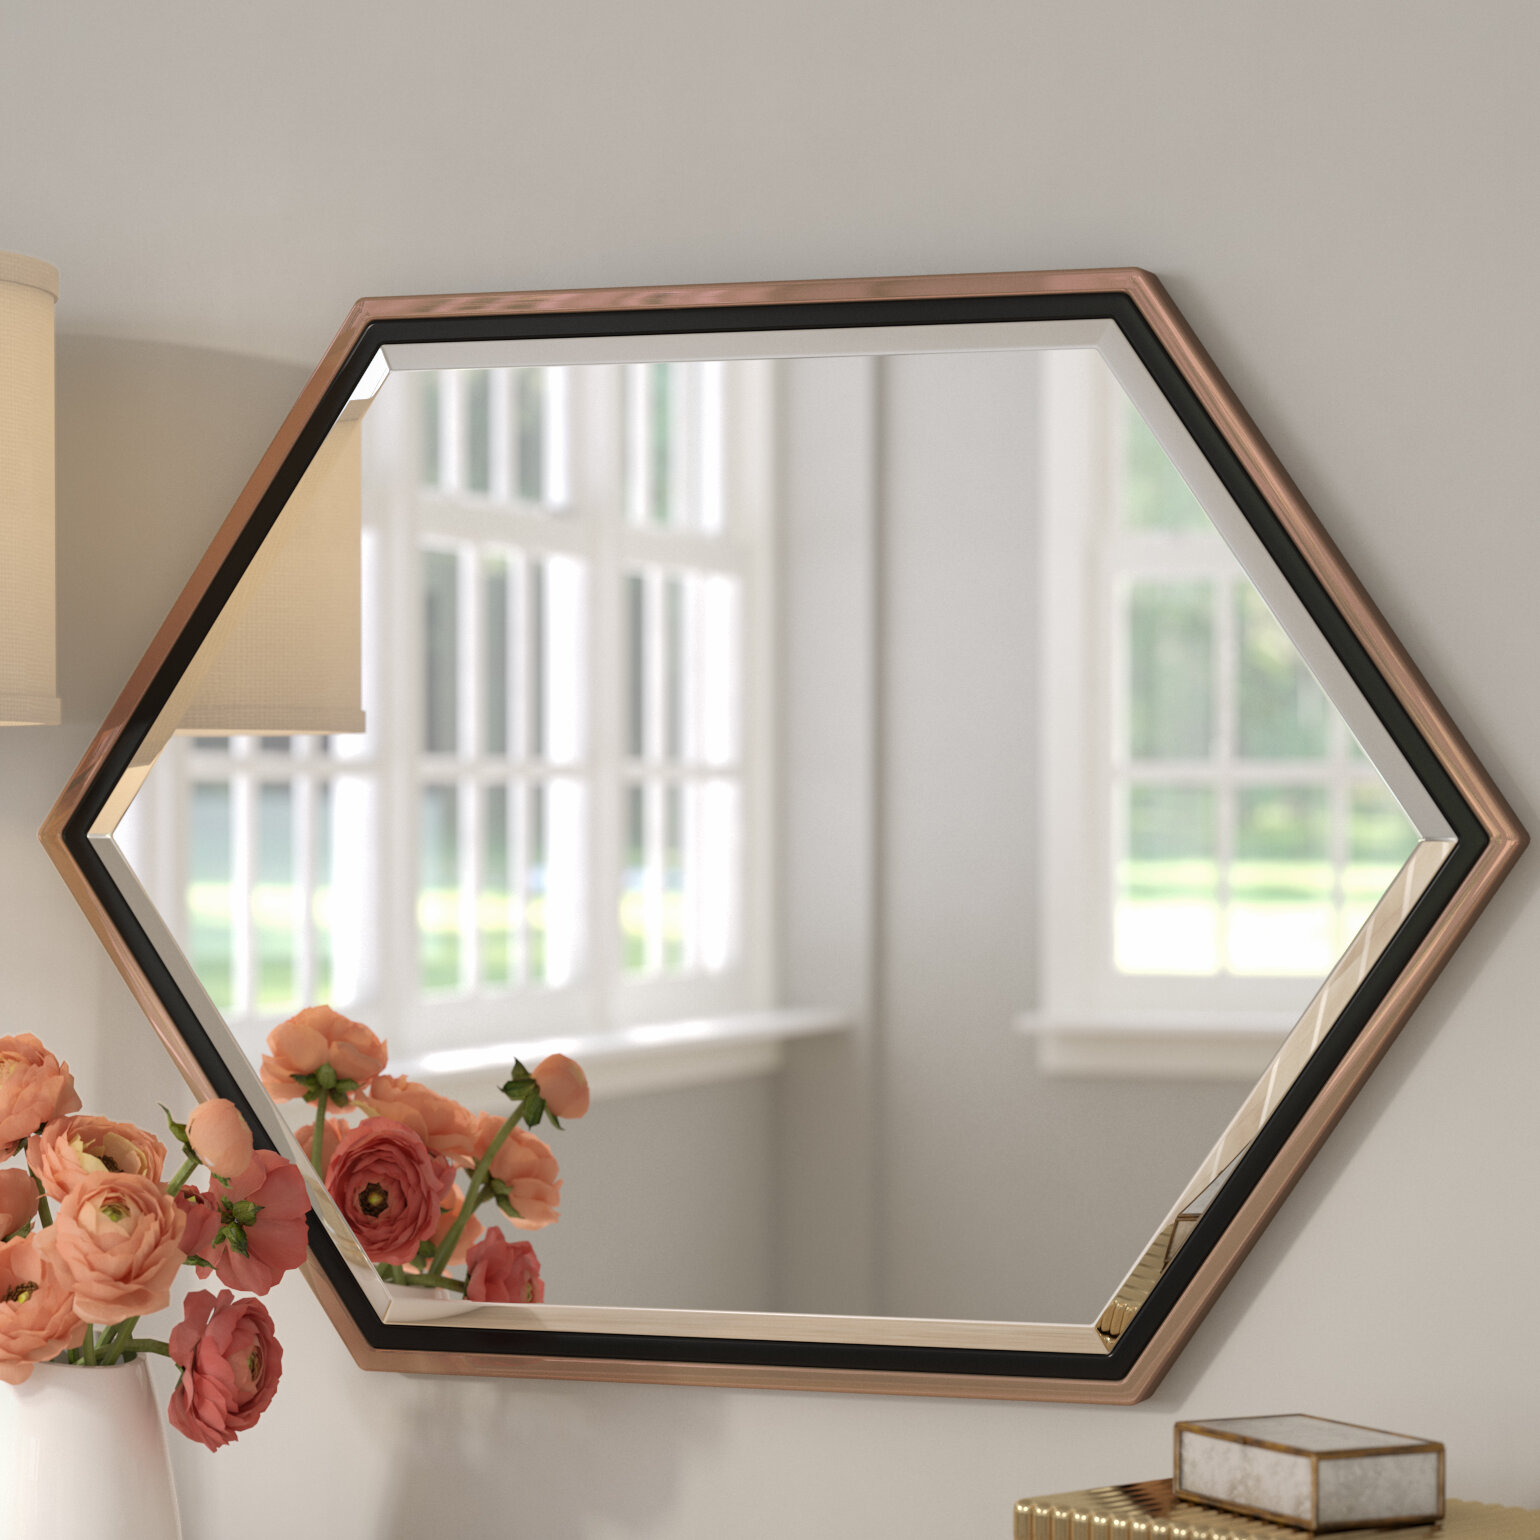 Broadmeadow Accent Wall Mirror | Wayfair Within Reba Accent Wall Mirrors (View 7 of 20)